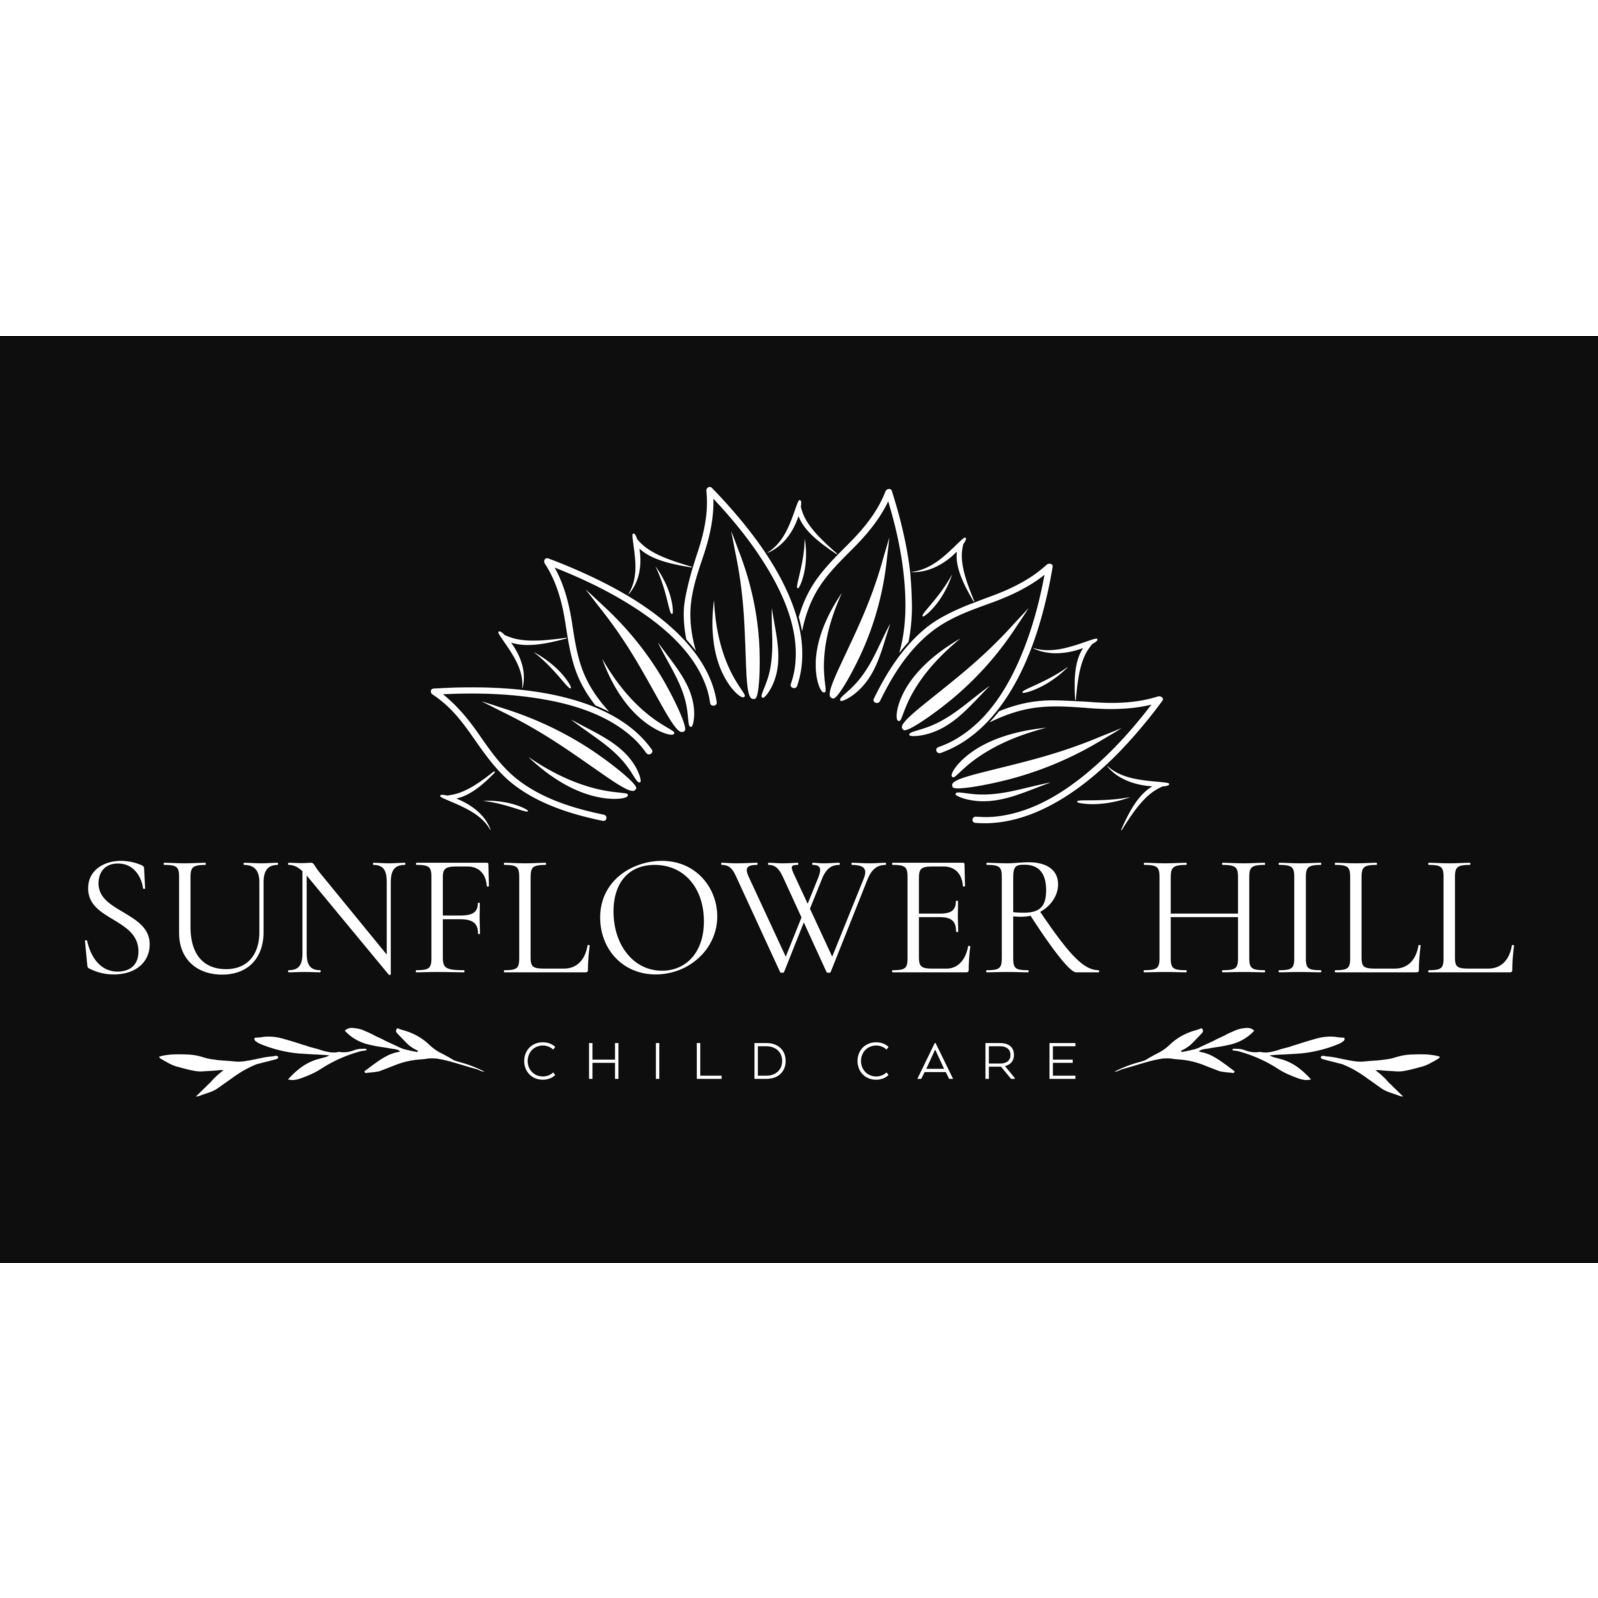 Sunflower Hill Child Care - Lakewood, CO 80227 - (303)489-2985   ShowMeLocal.com